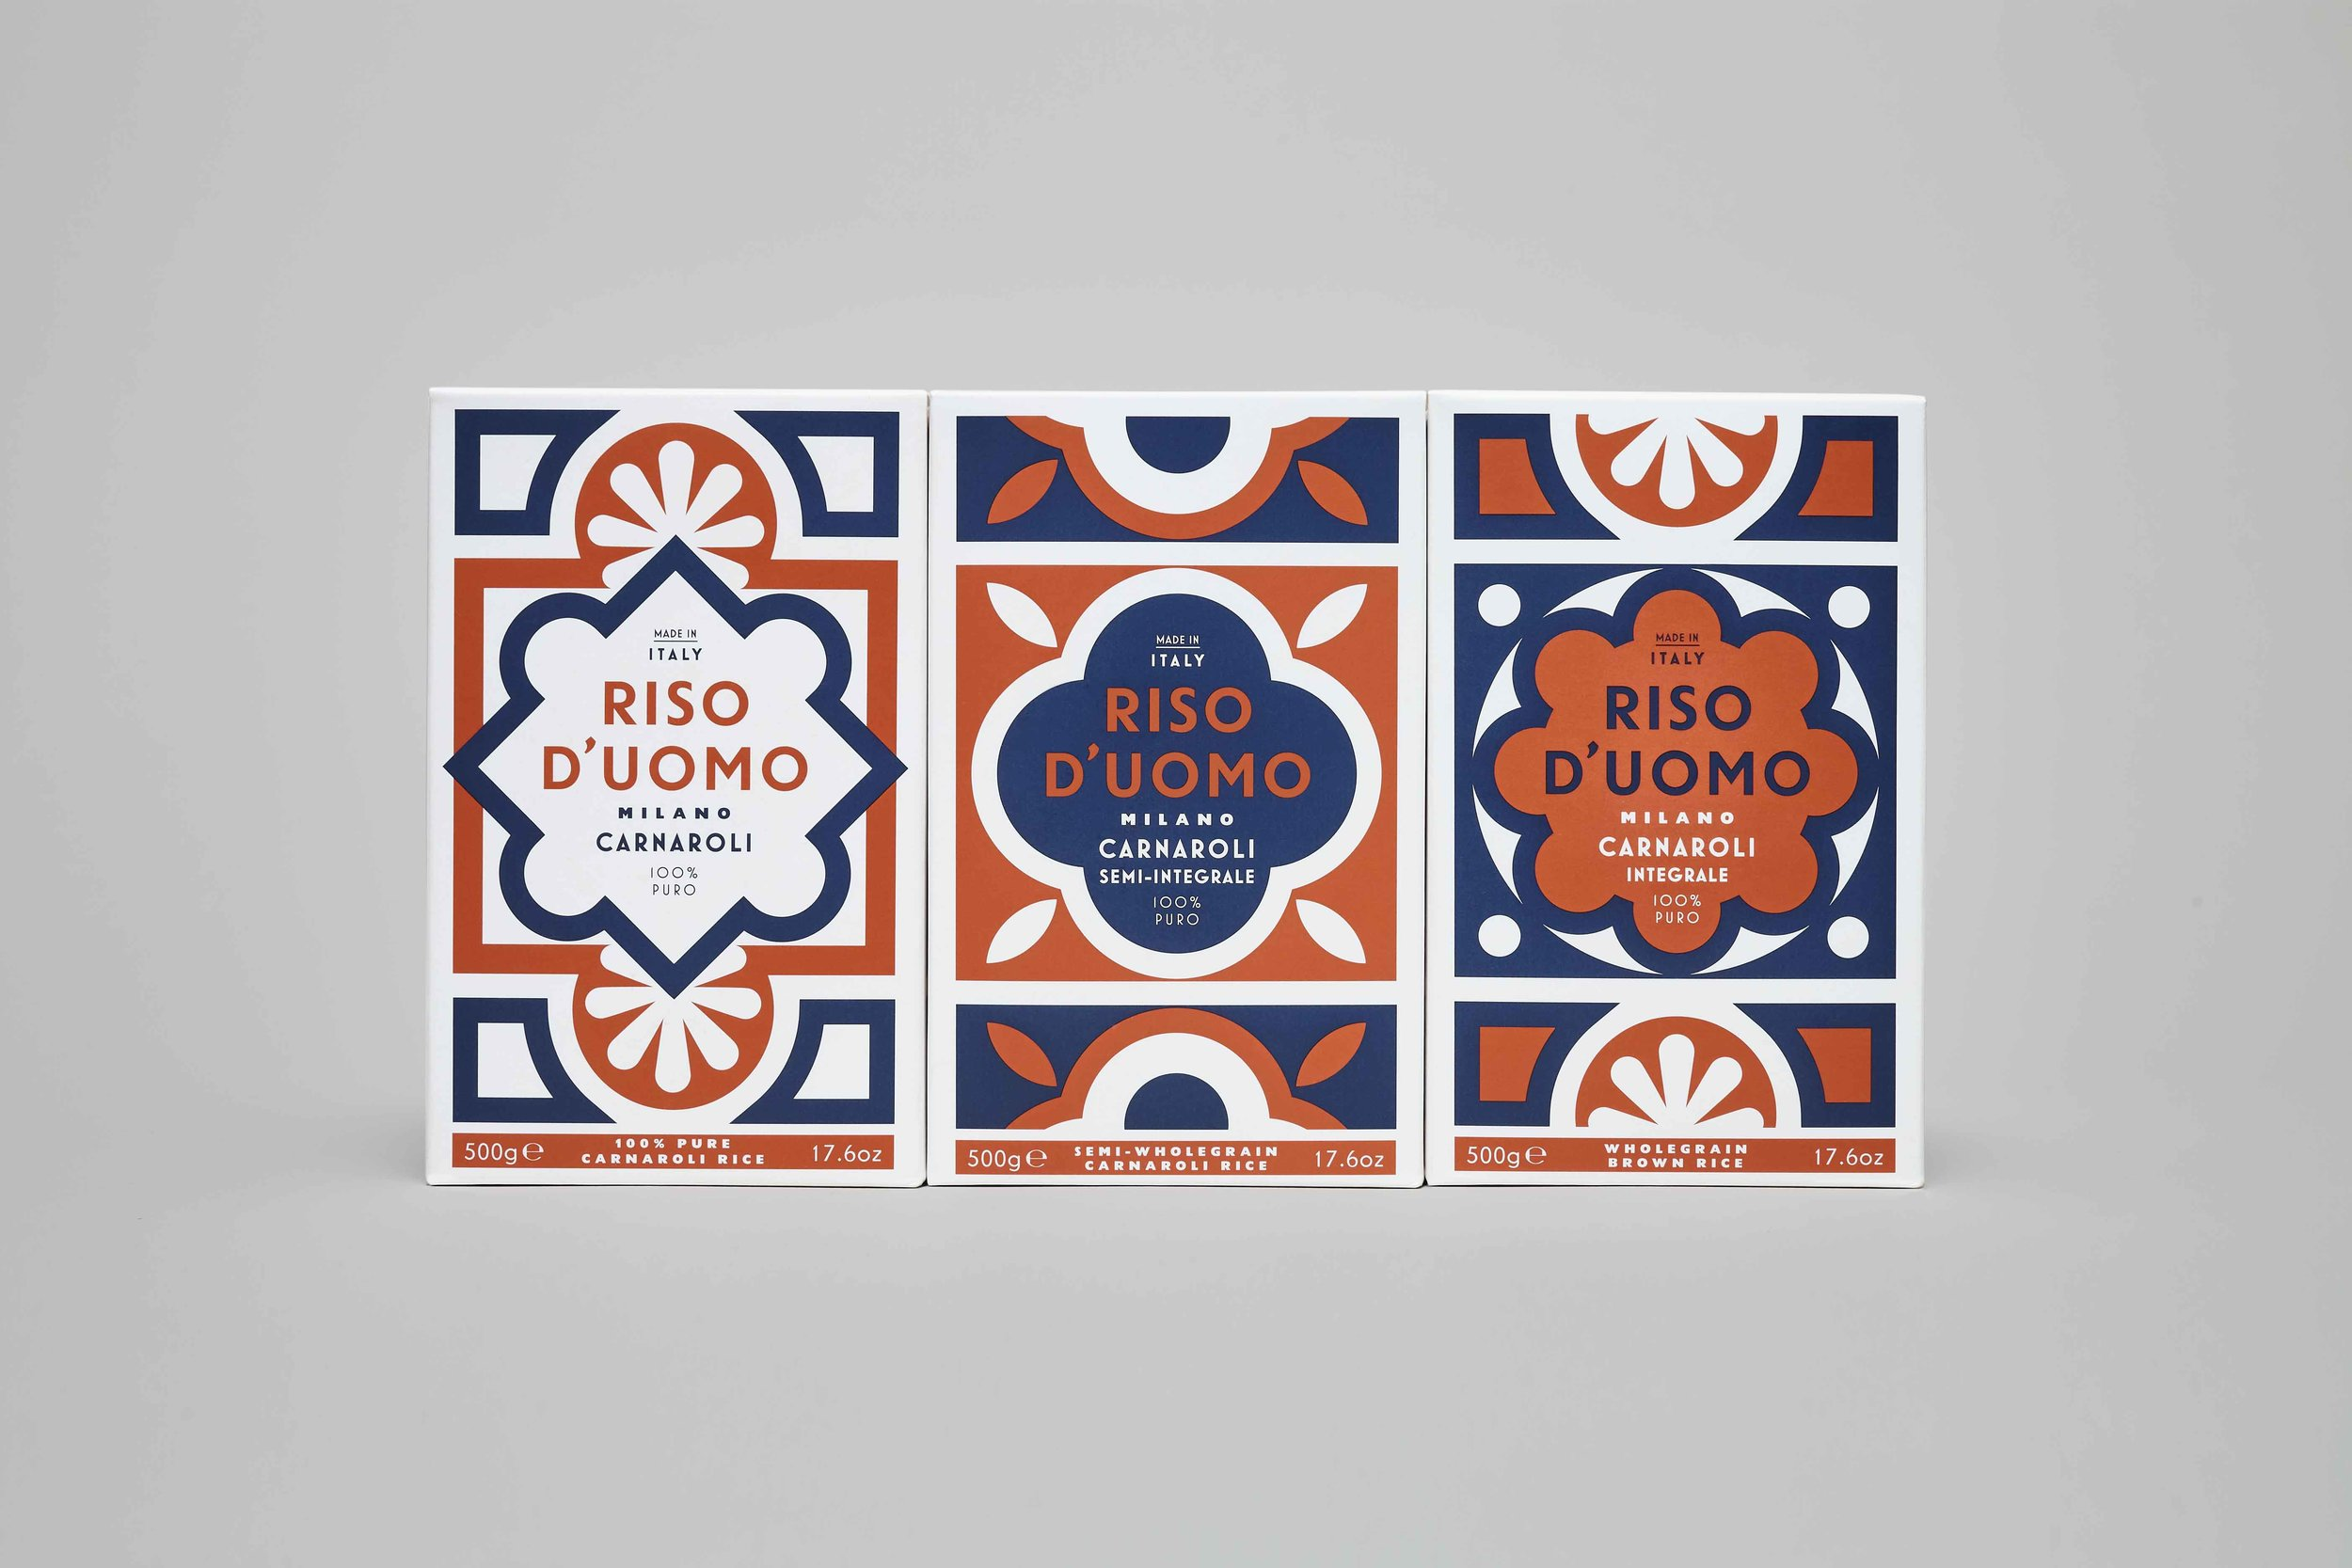 riso duomo italy packaging design